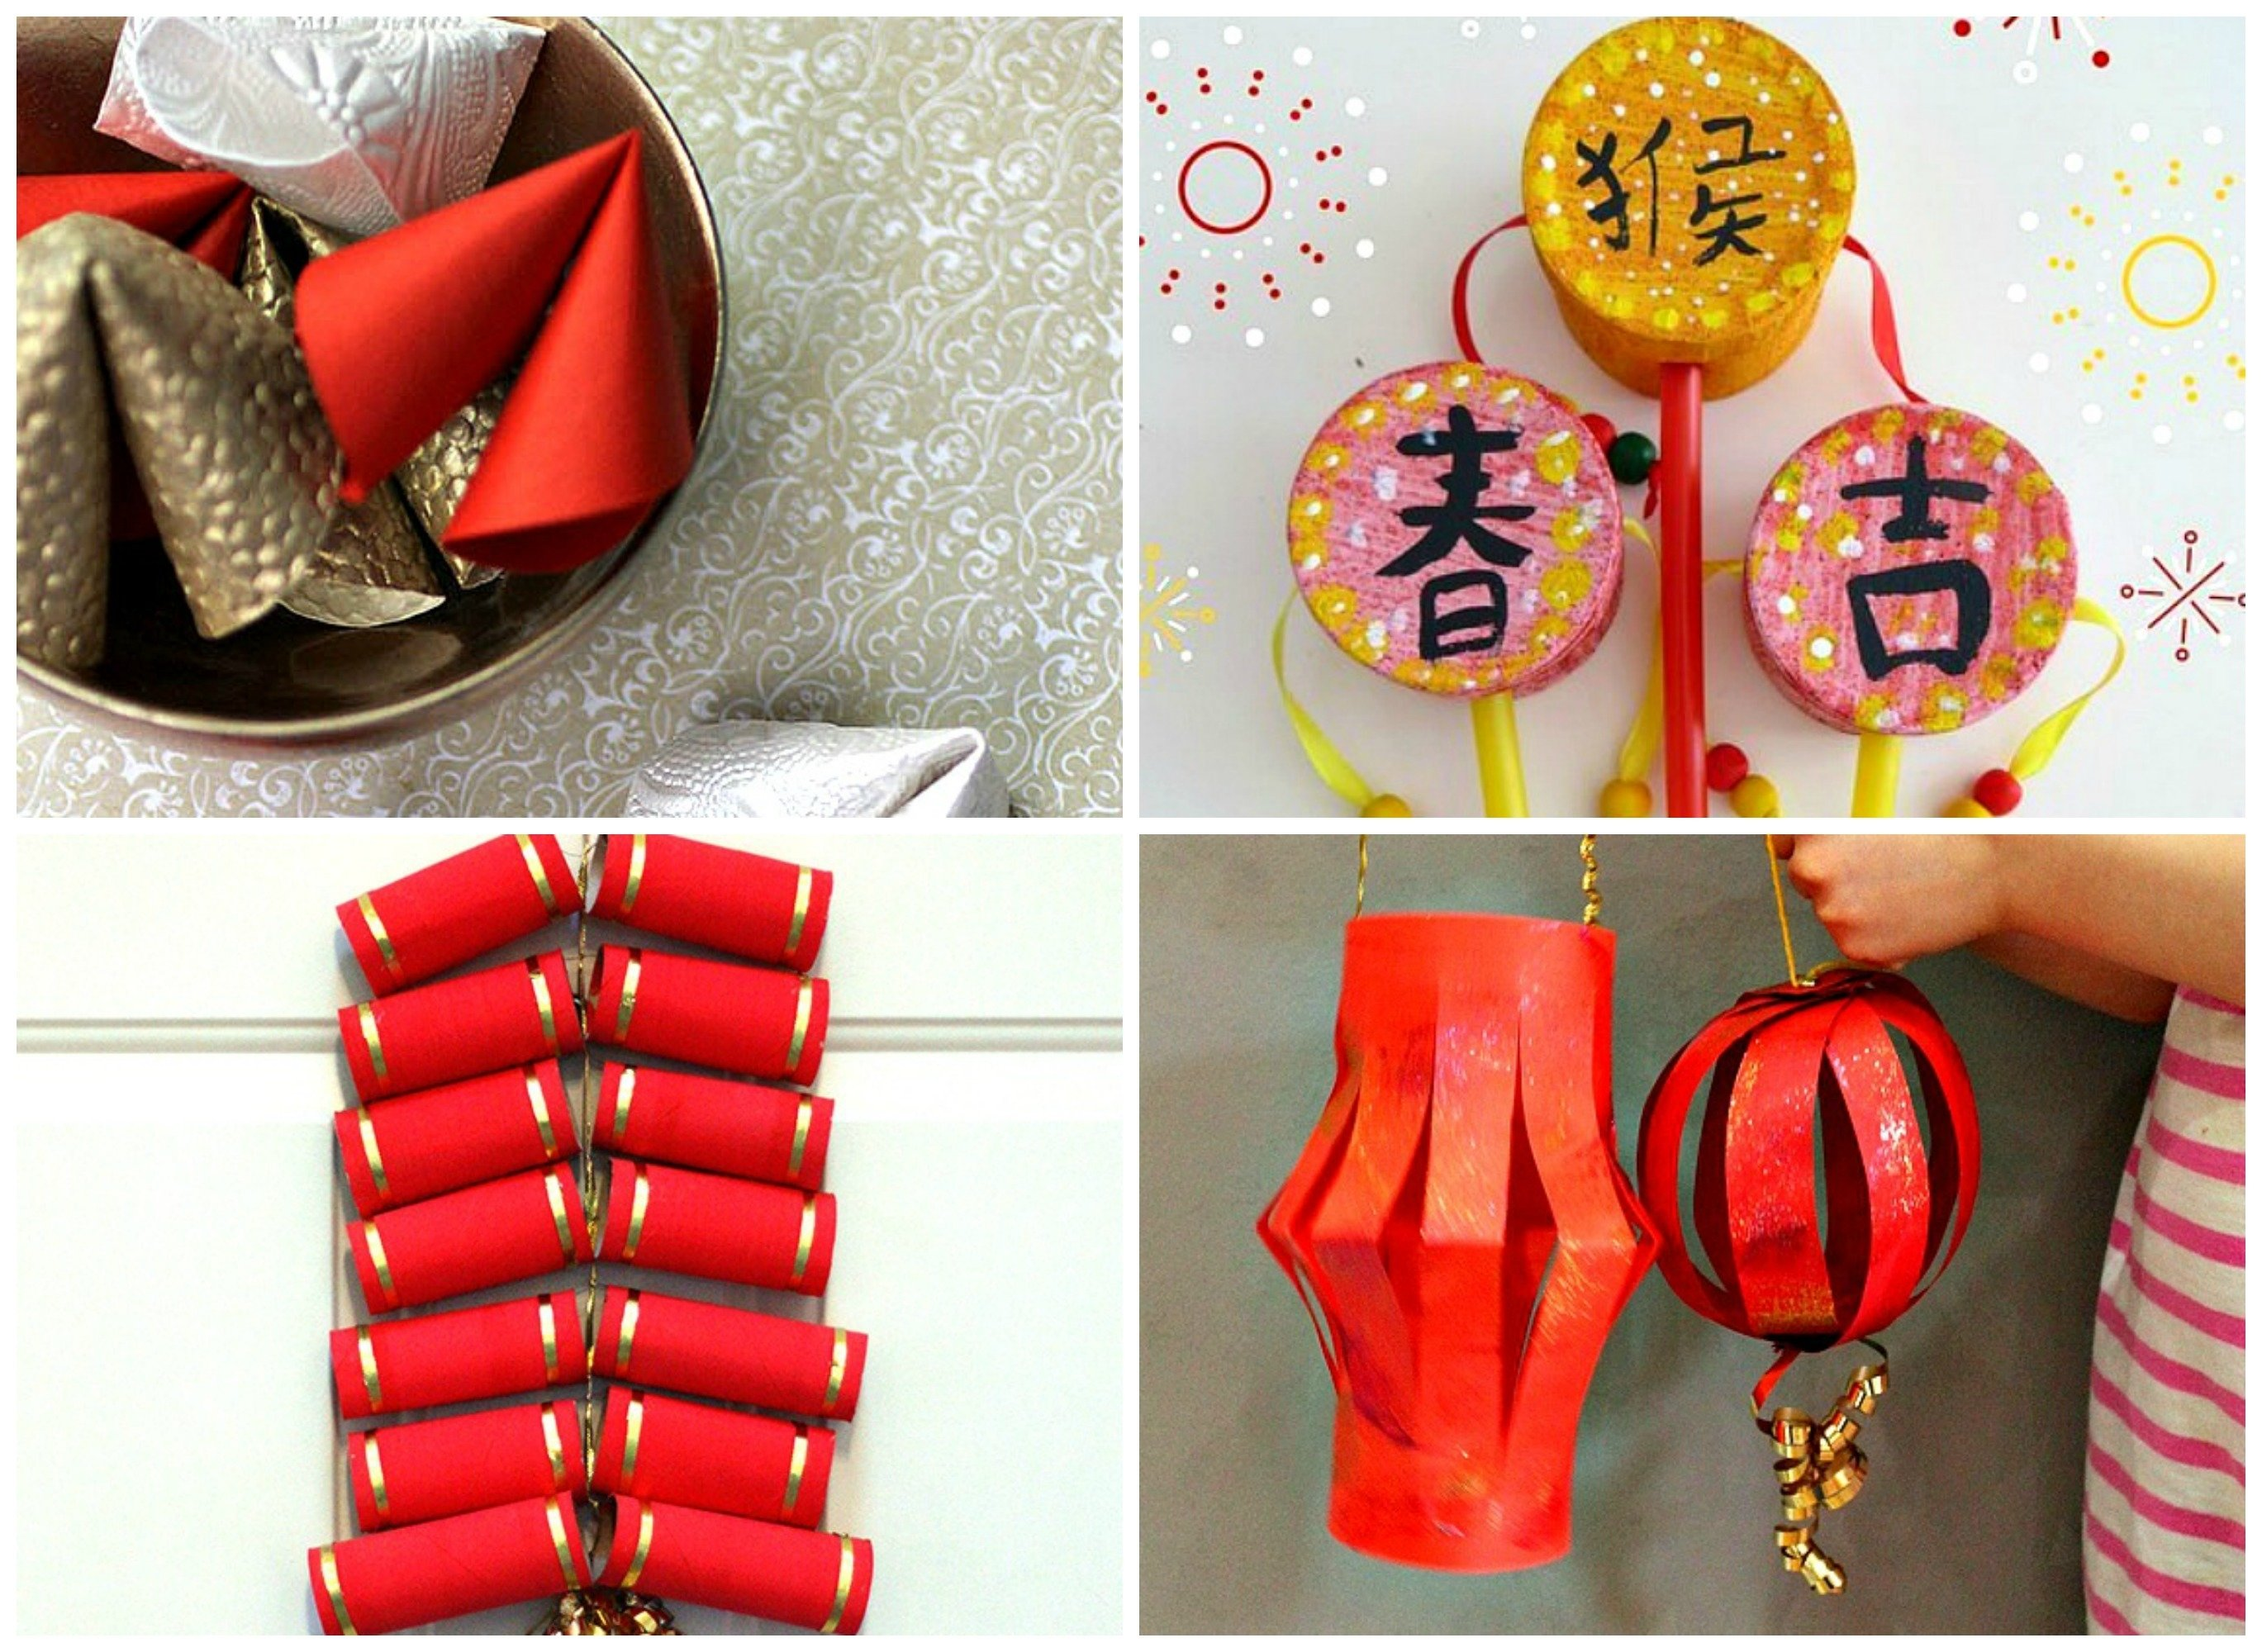 5 chinese new year crafts to do with the kids - the write balance